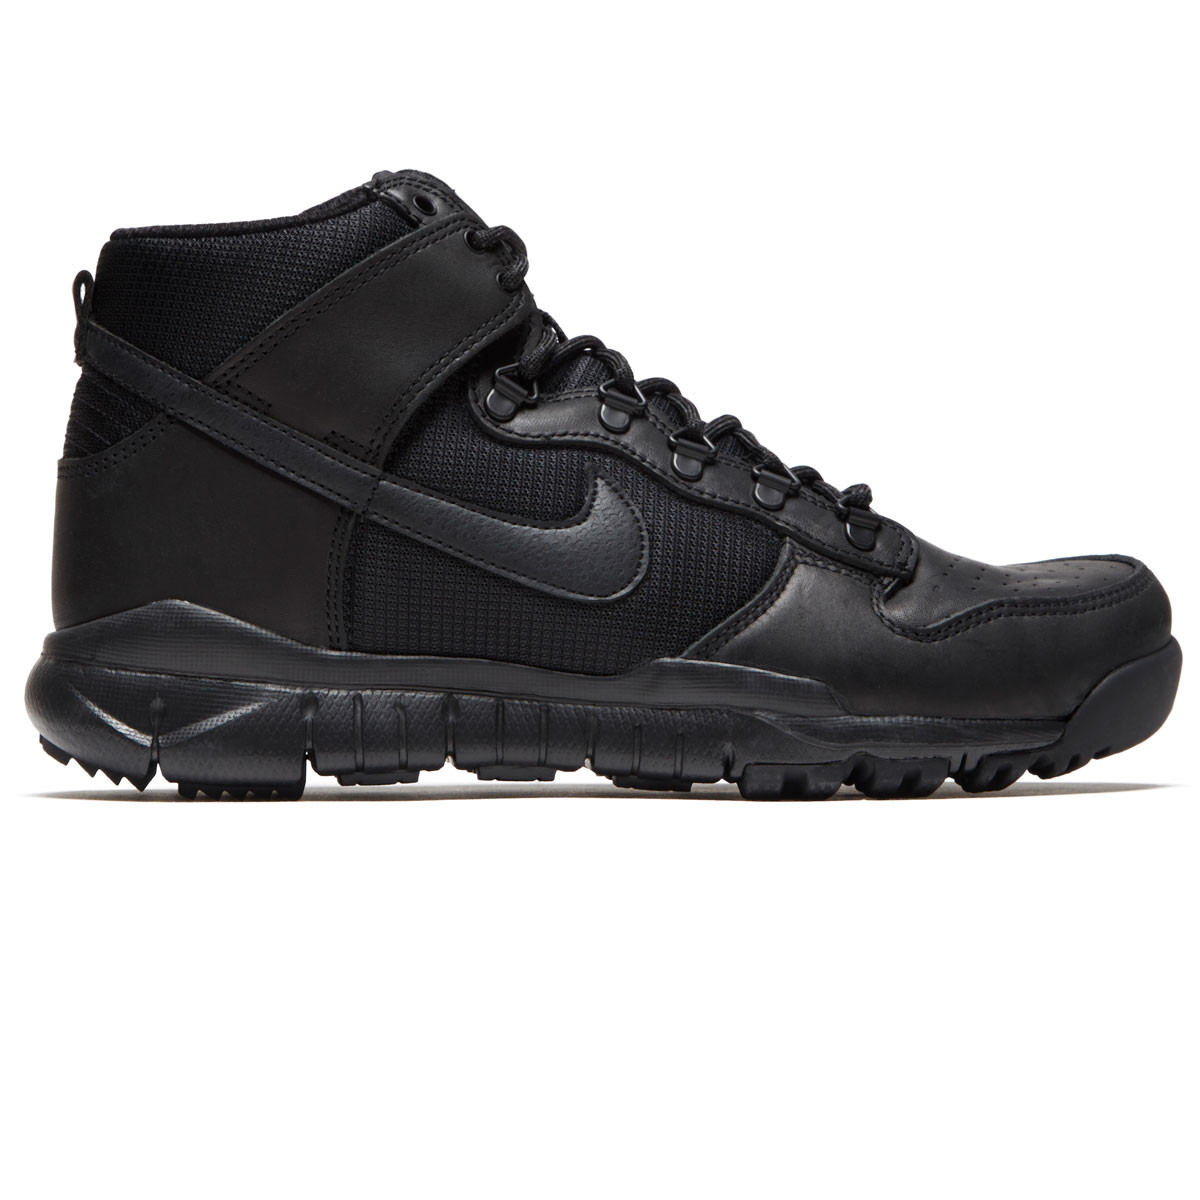 Nike SB Dunk High OMS Shoes